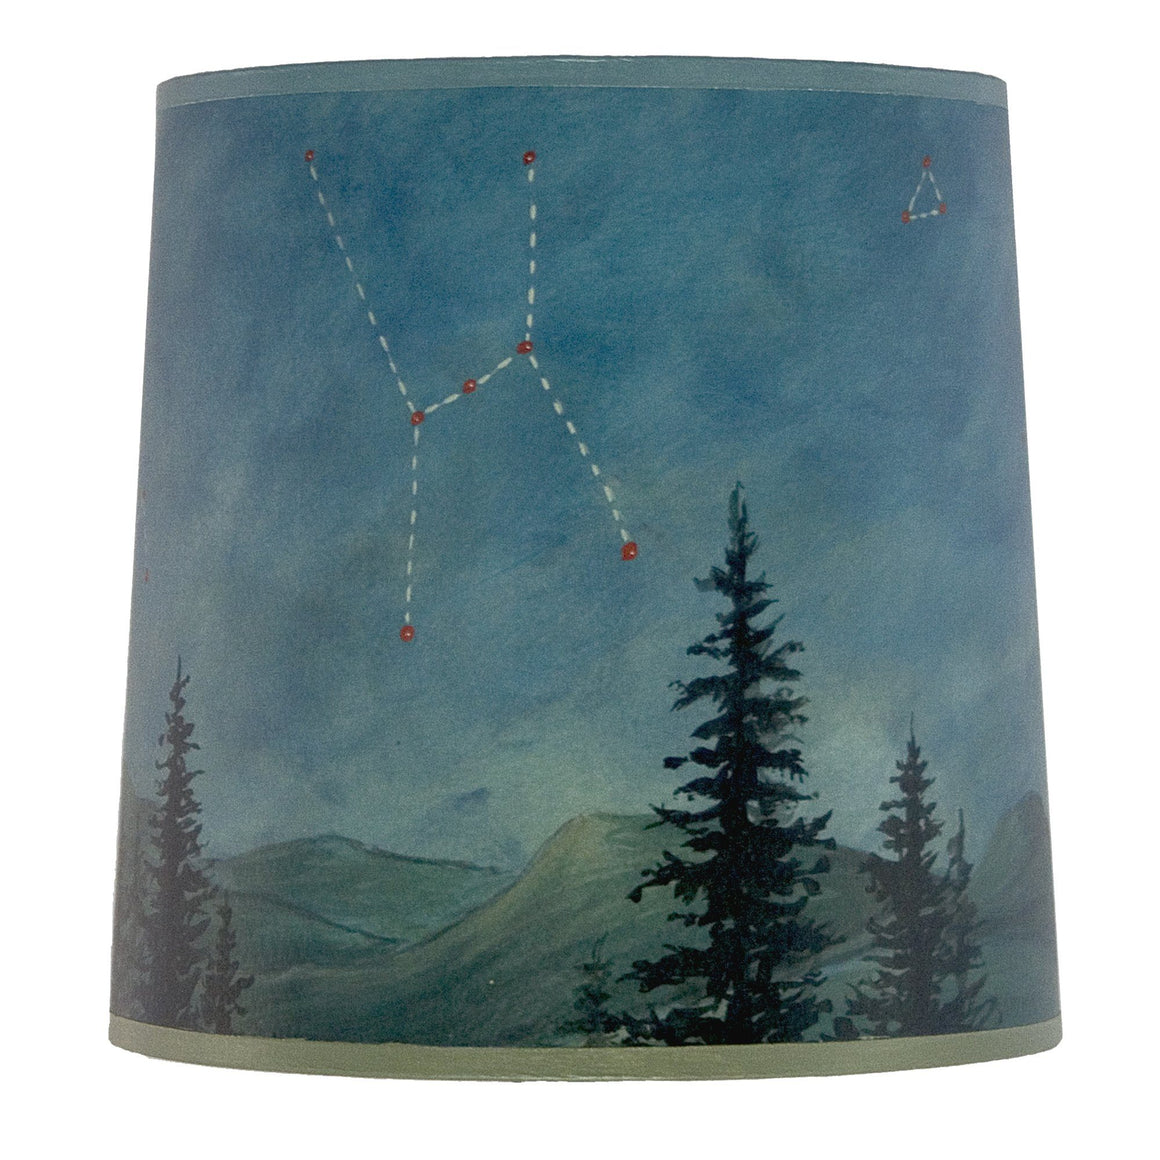 Medium Drum Lamp Shade in Midnight Sky